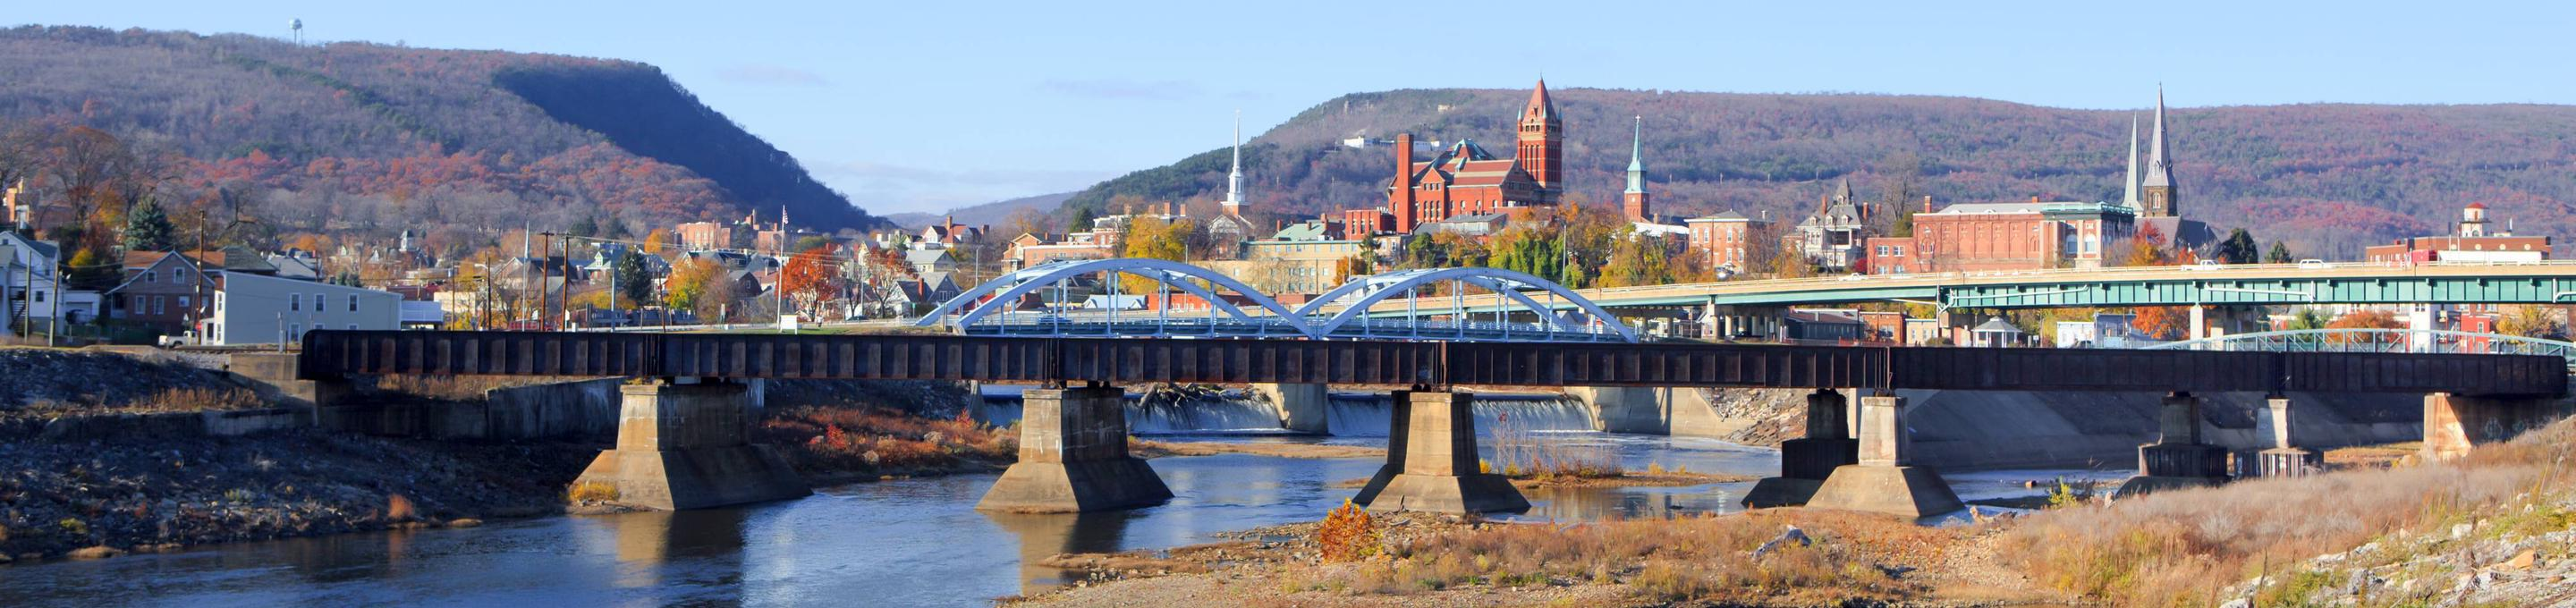 Cumberland, MD panorama from C&O Canal Towpath